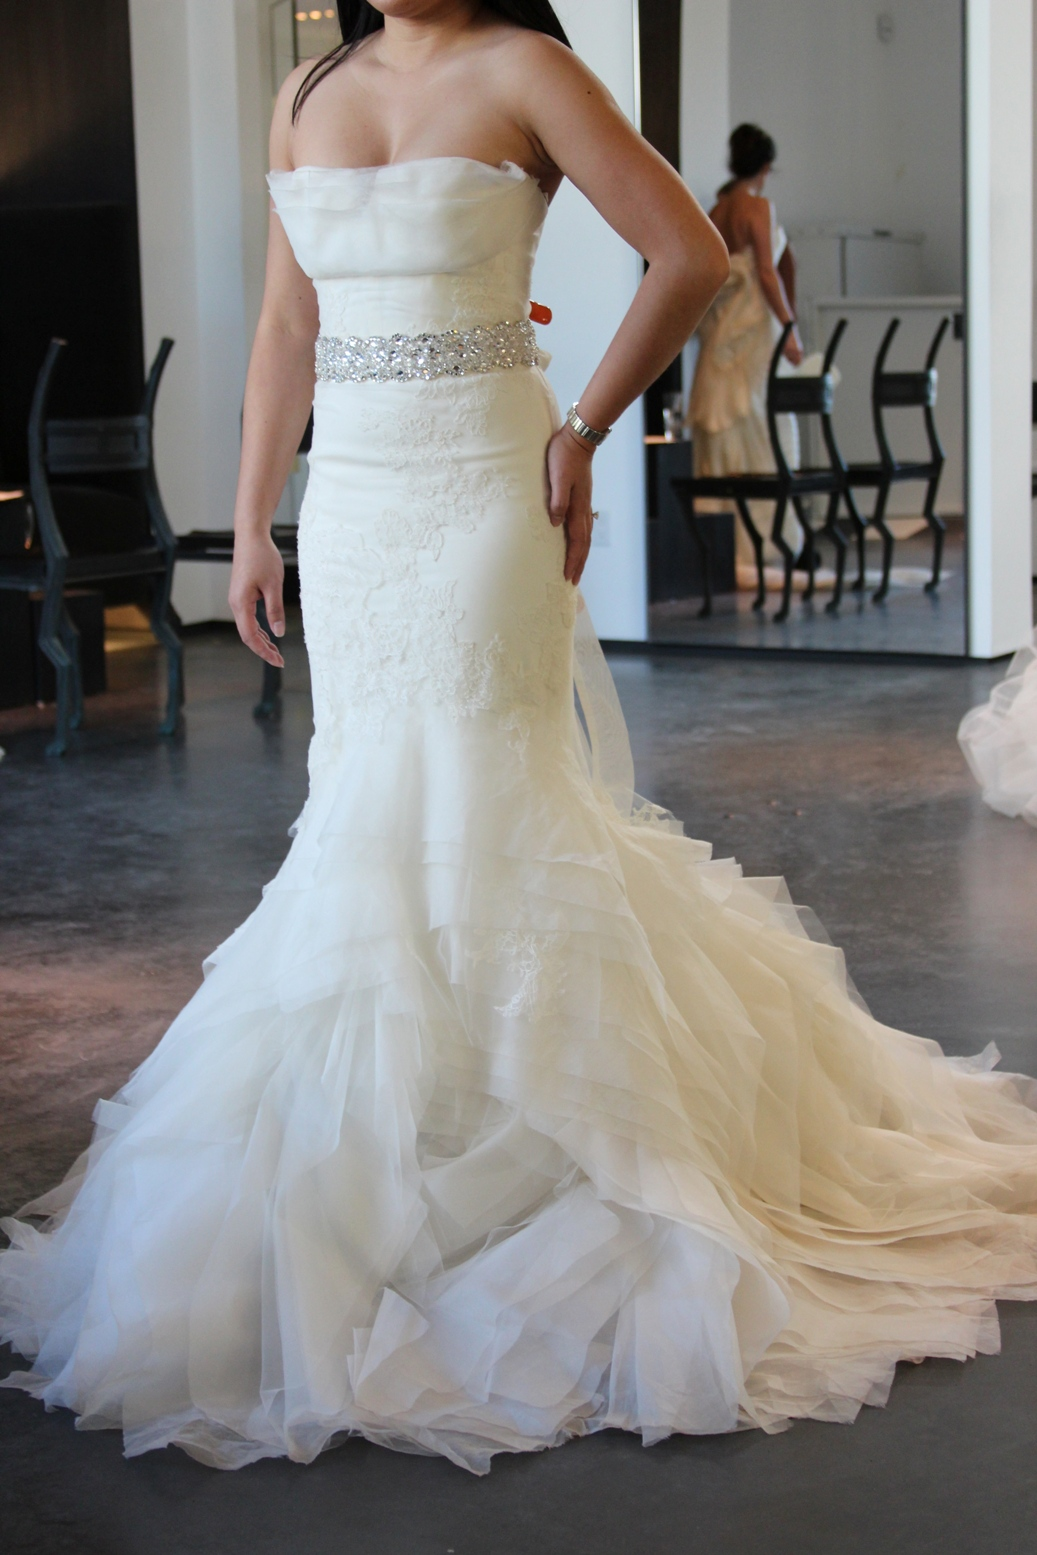 Petticoat Under Wedding Dress 83 Fabulous And this is Fawn